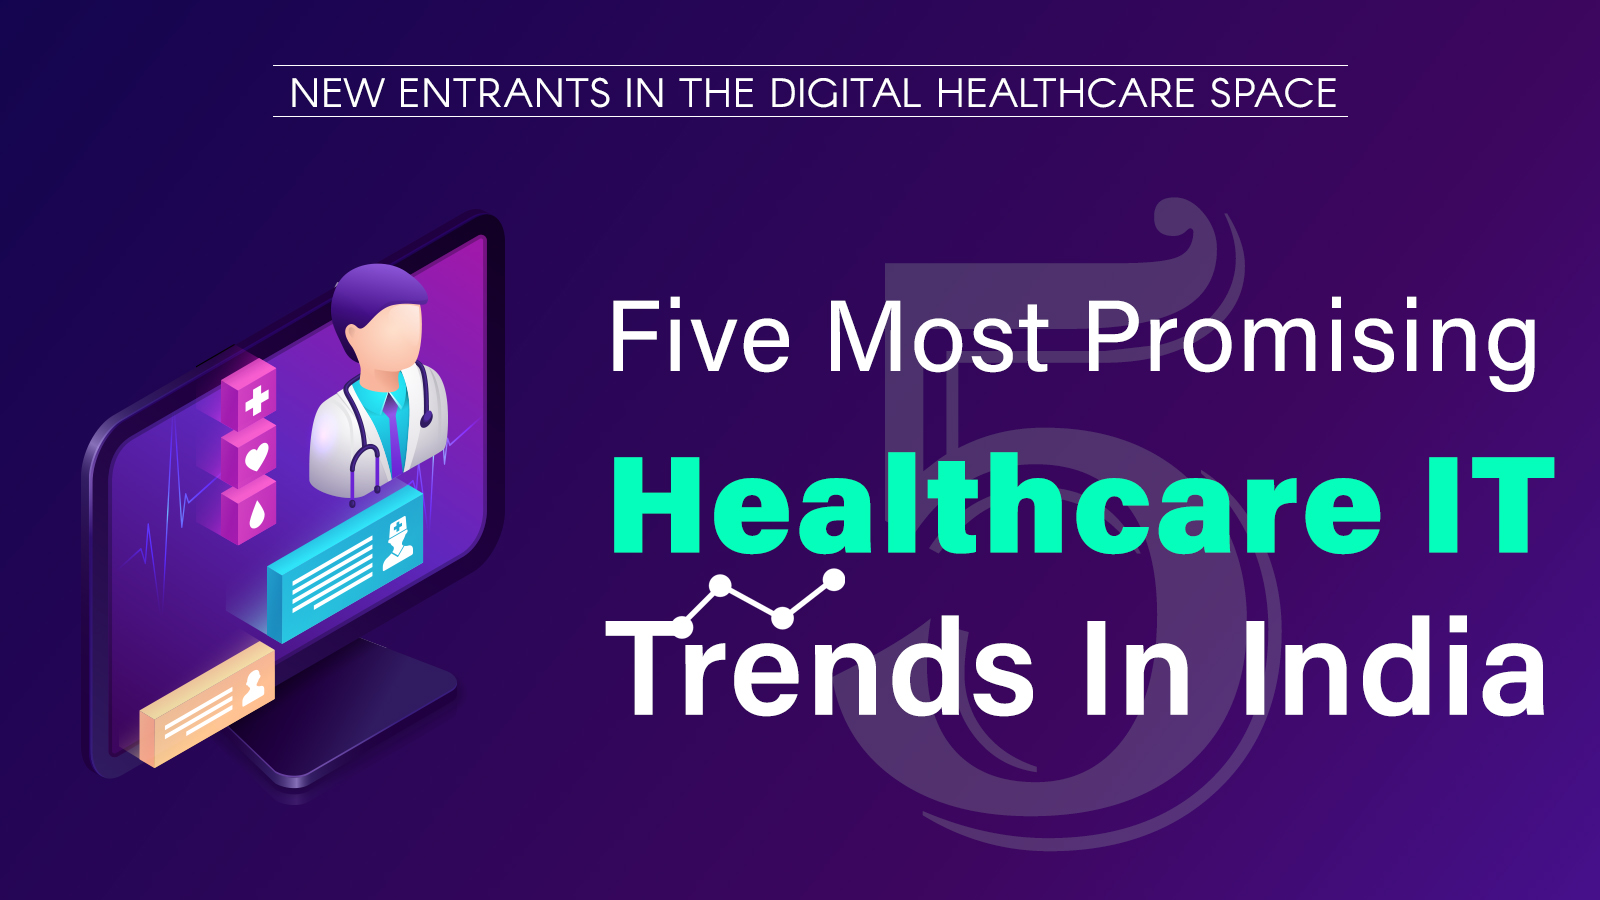 Five Most Promising Healthcare IT Trends In India